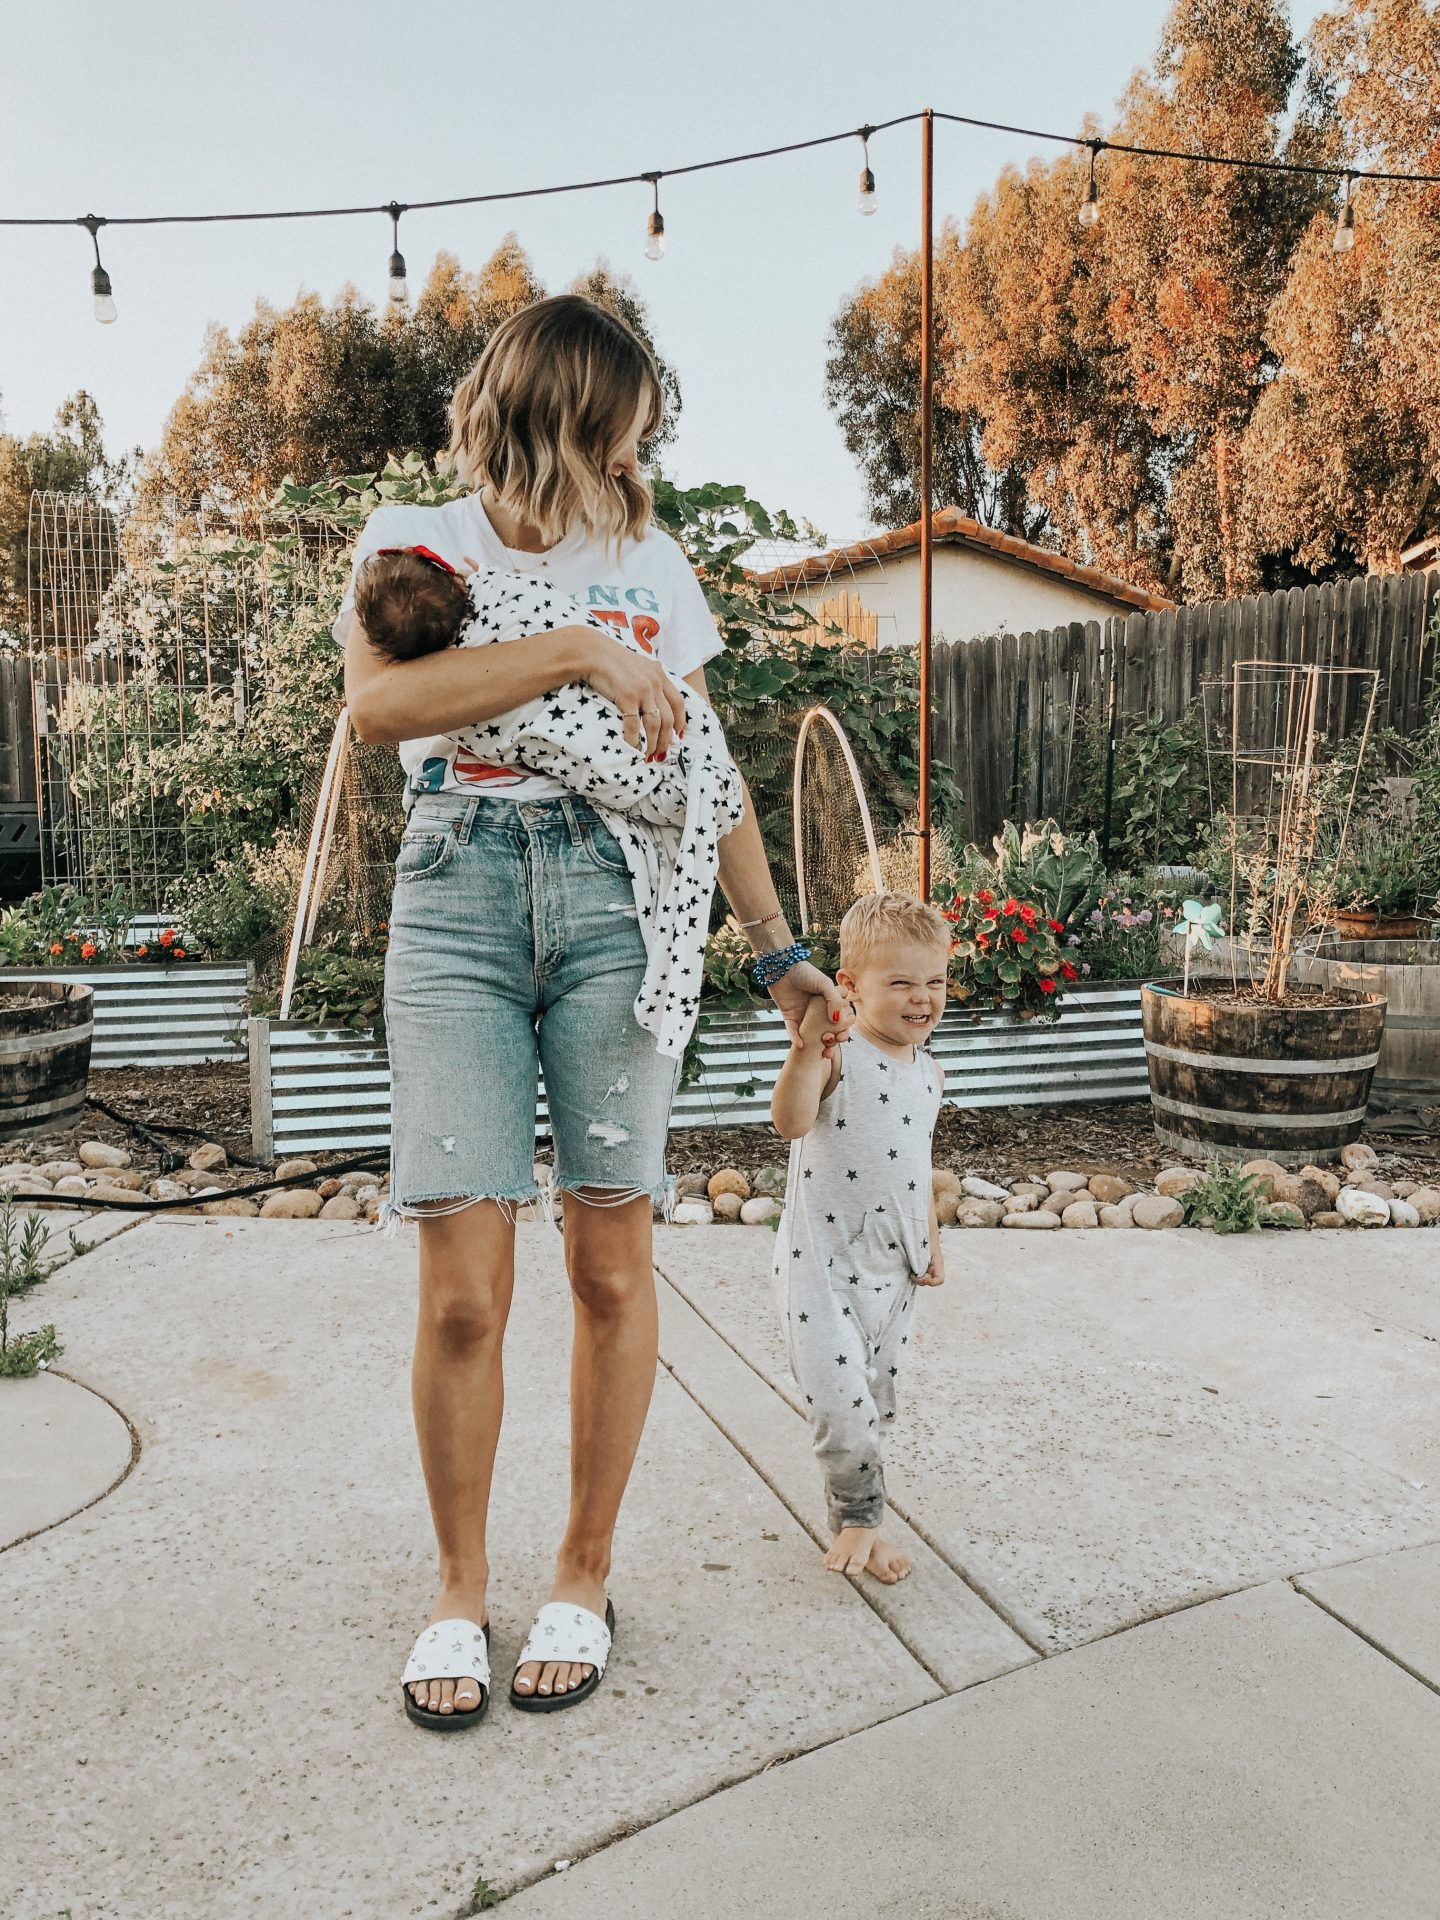 4th of July Fashion by popular San Diego fashion blog, Navy Grace: image of a mom and dad standing together while holding their kids and wearing AGolde jean shorts, Rolling Stones t-shirt, grey star print jumper.